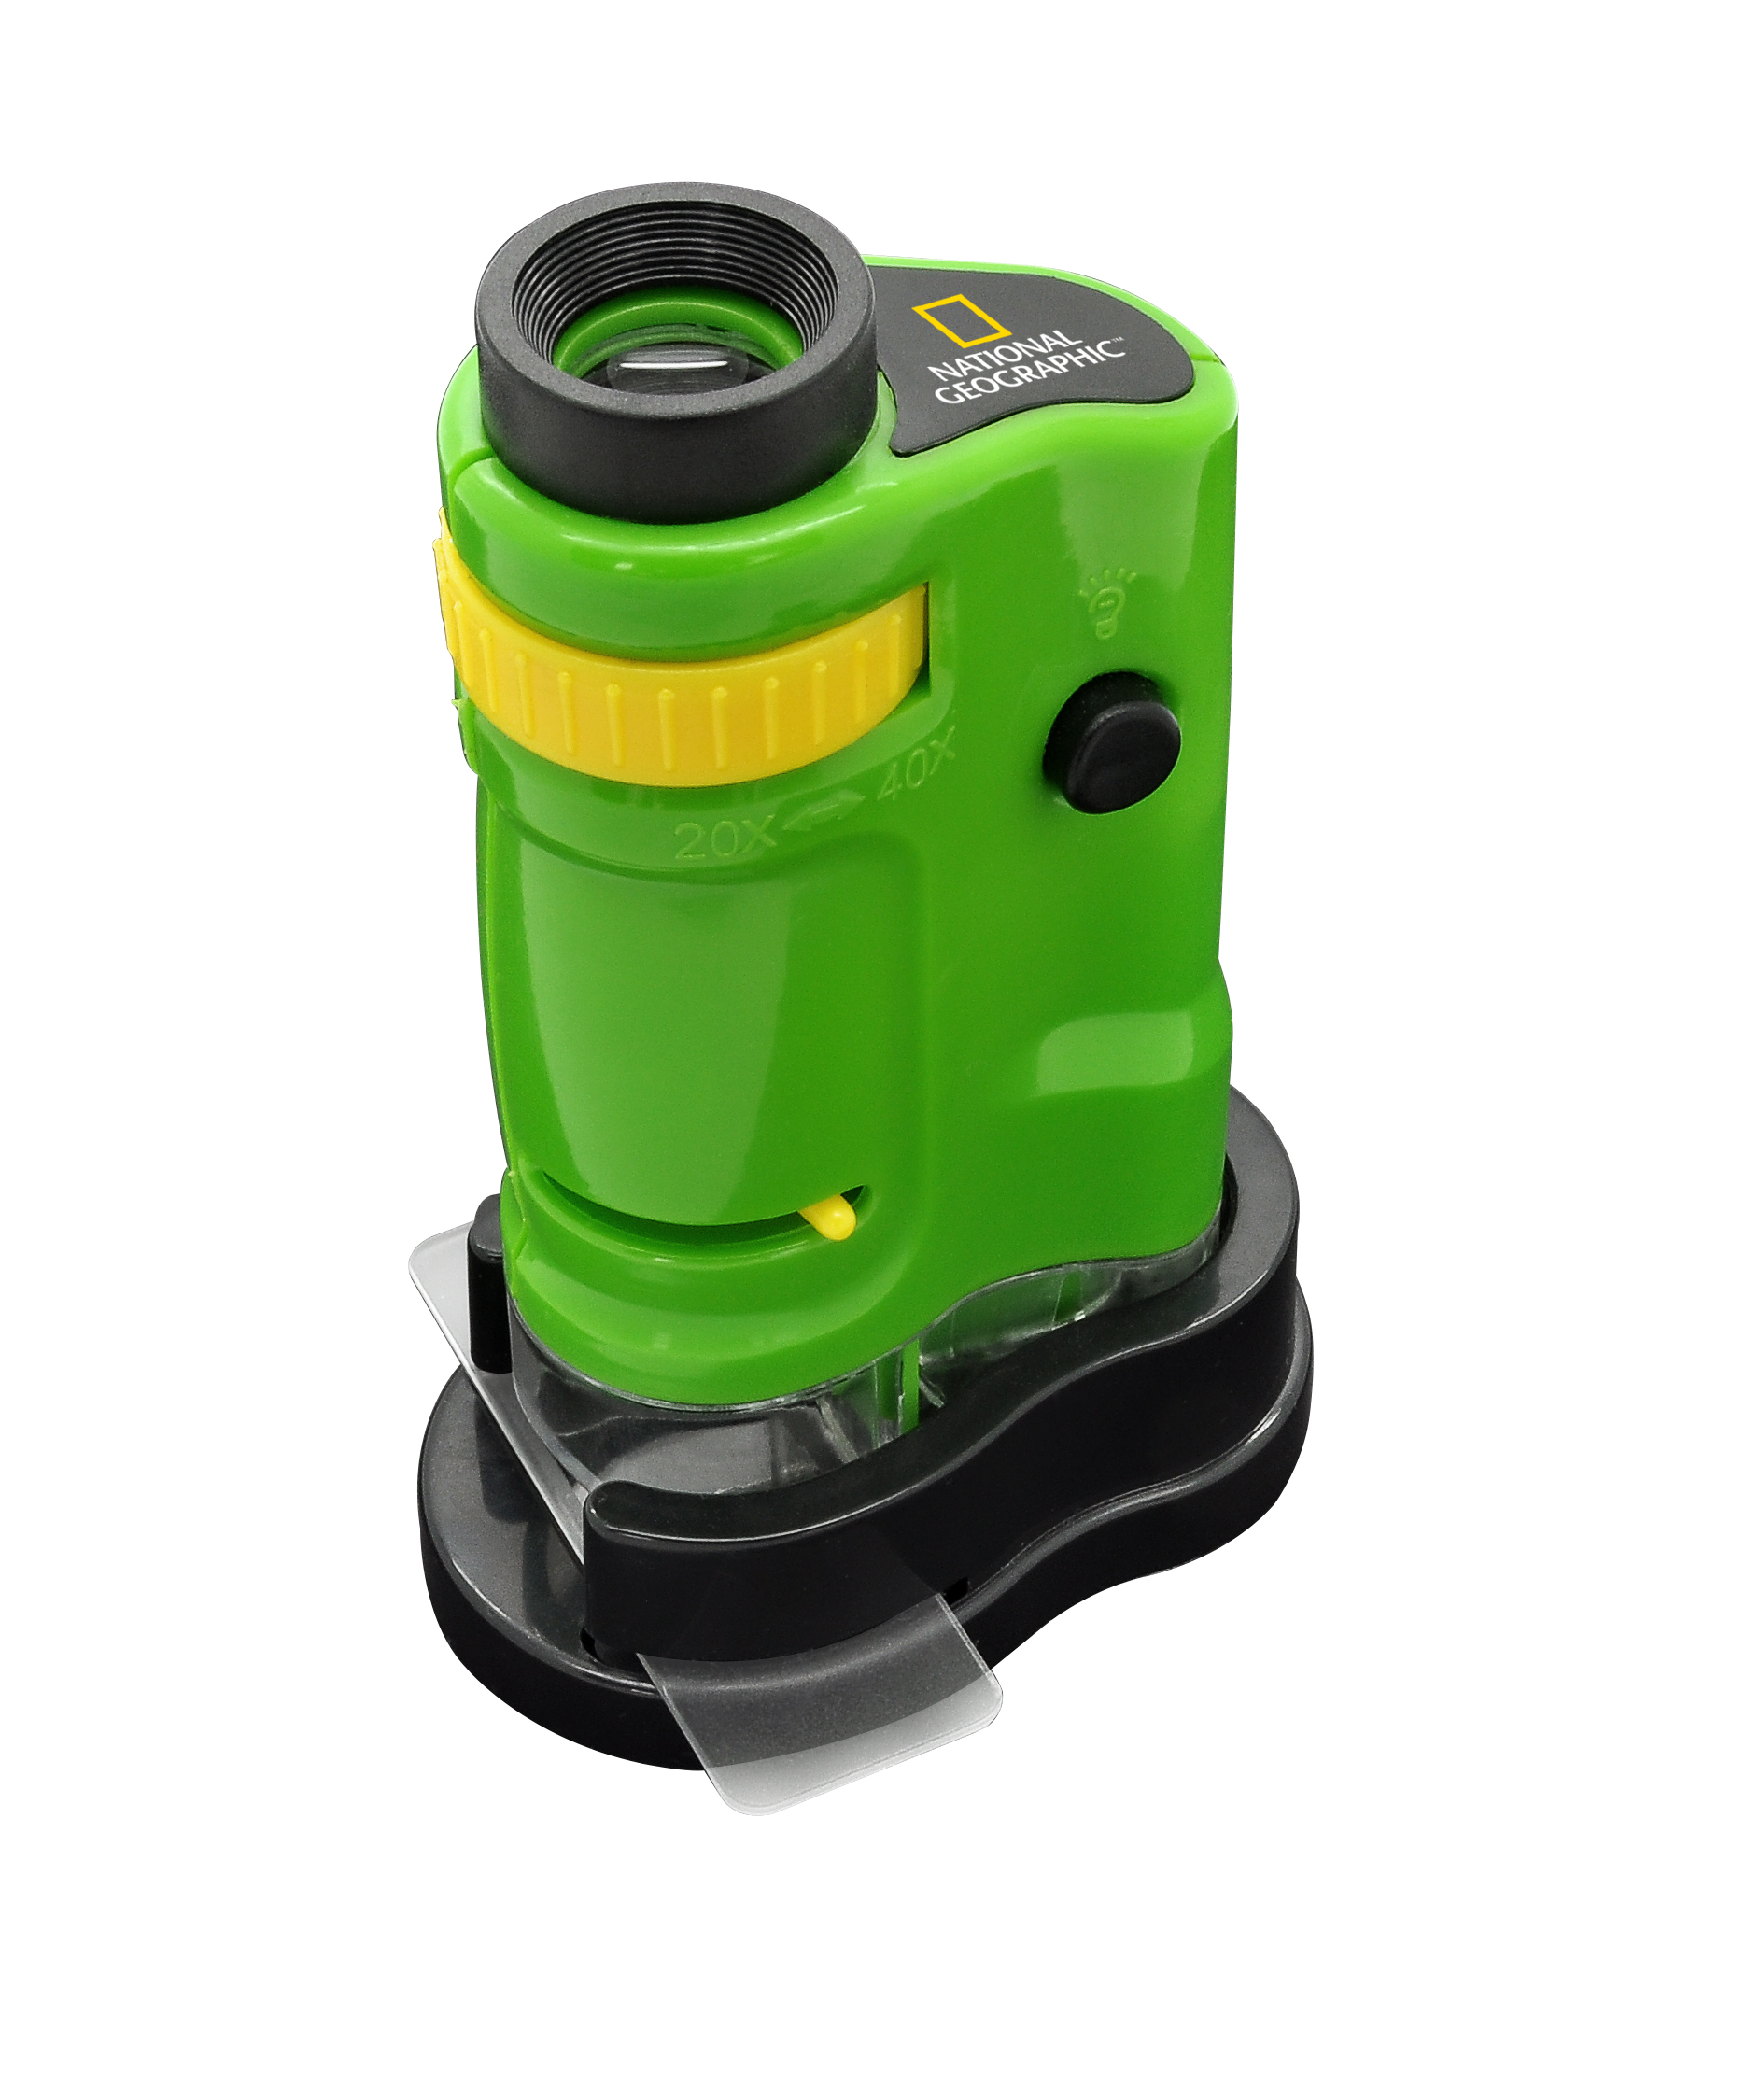 The ioptron handheld digital microscope is a simple to use microscope perfect for the classroom, home, or office. NATIONAL GEOGRAPHIC Compact Handheld Microscope   Bresser